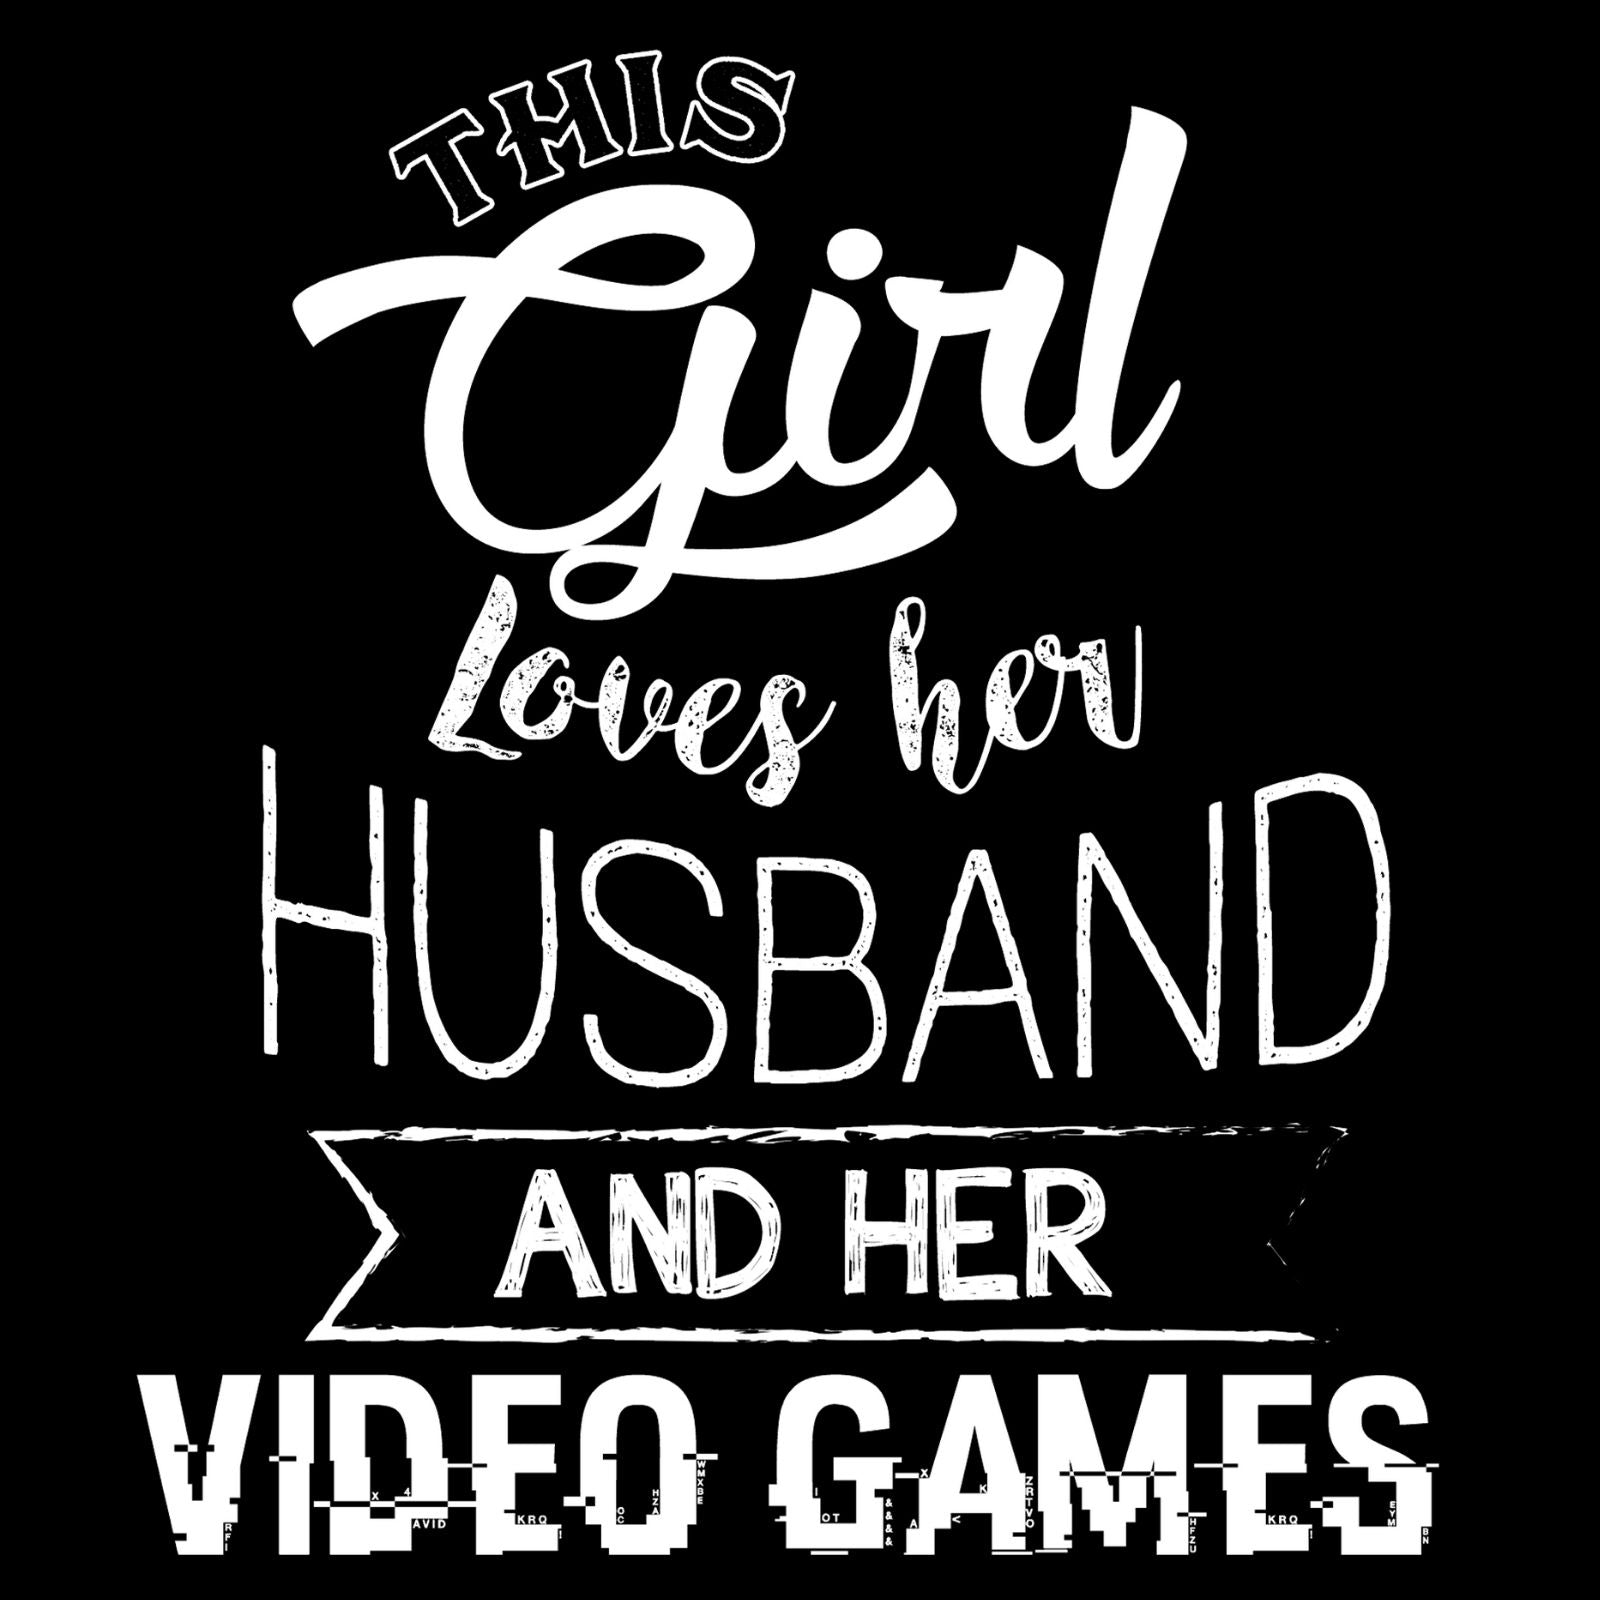 This Girl Loves Her Husband and Her Video Games - Bastard Graphics